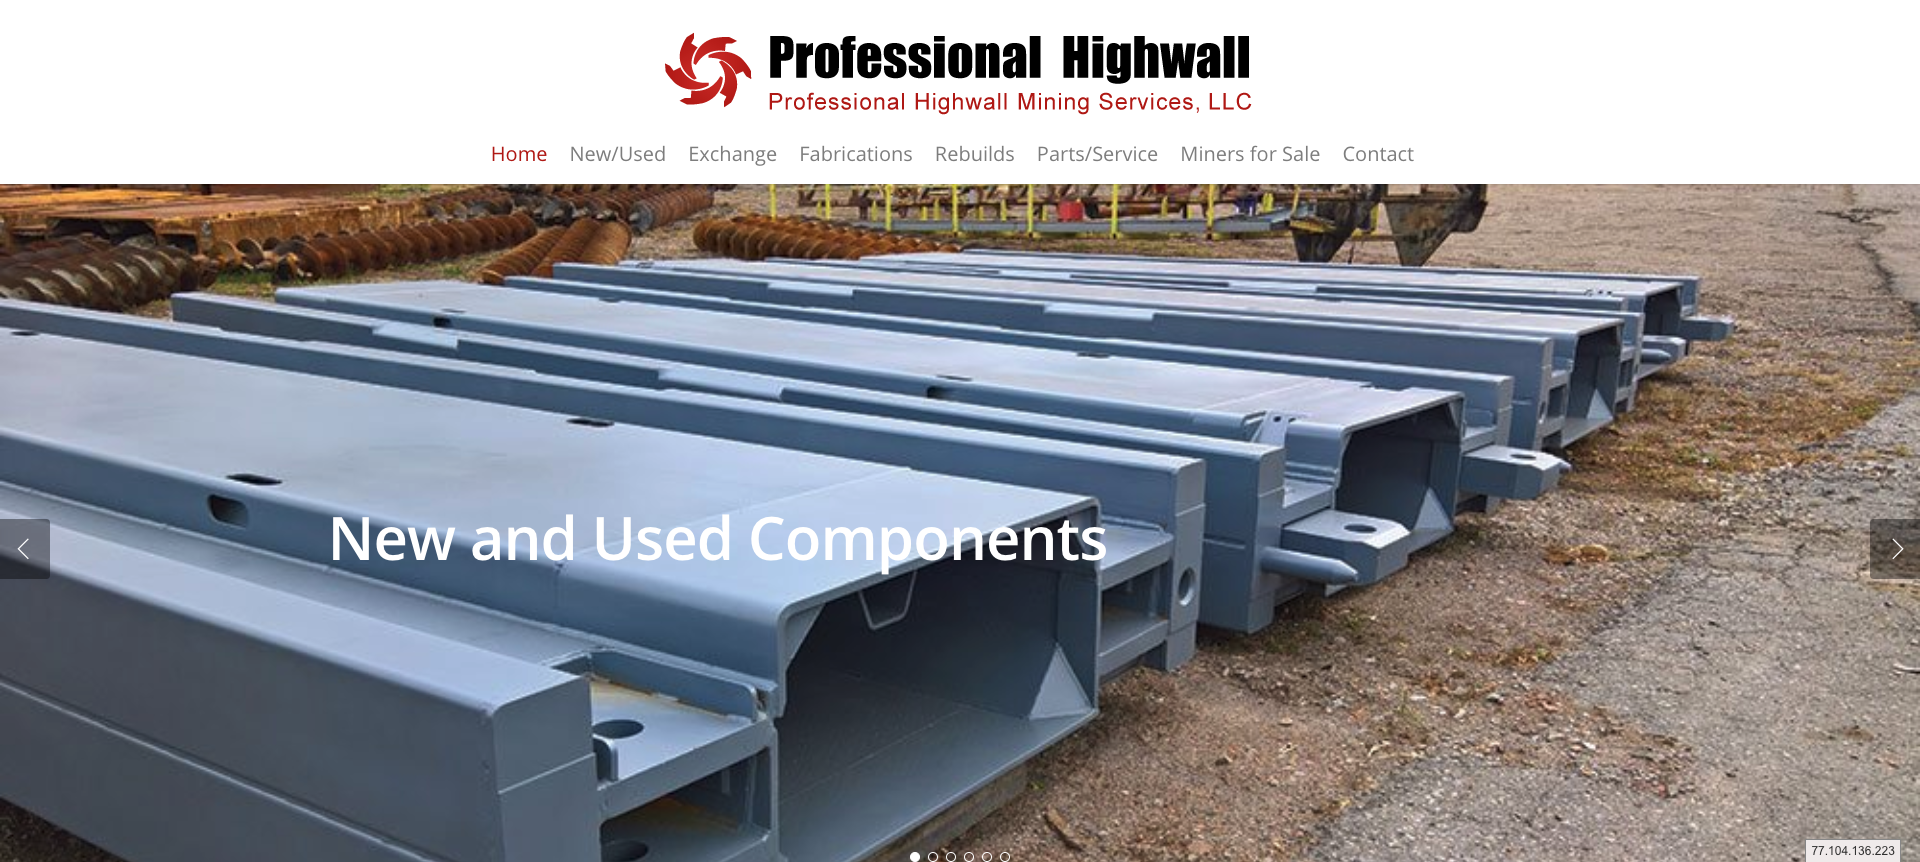 Professional Highwall Mining Services Located in Beckley West Virginia